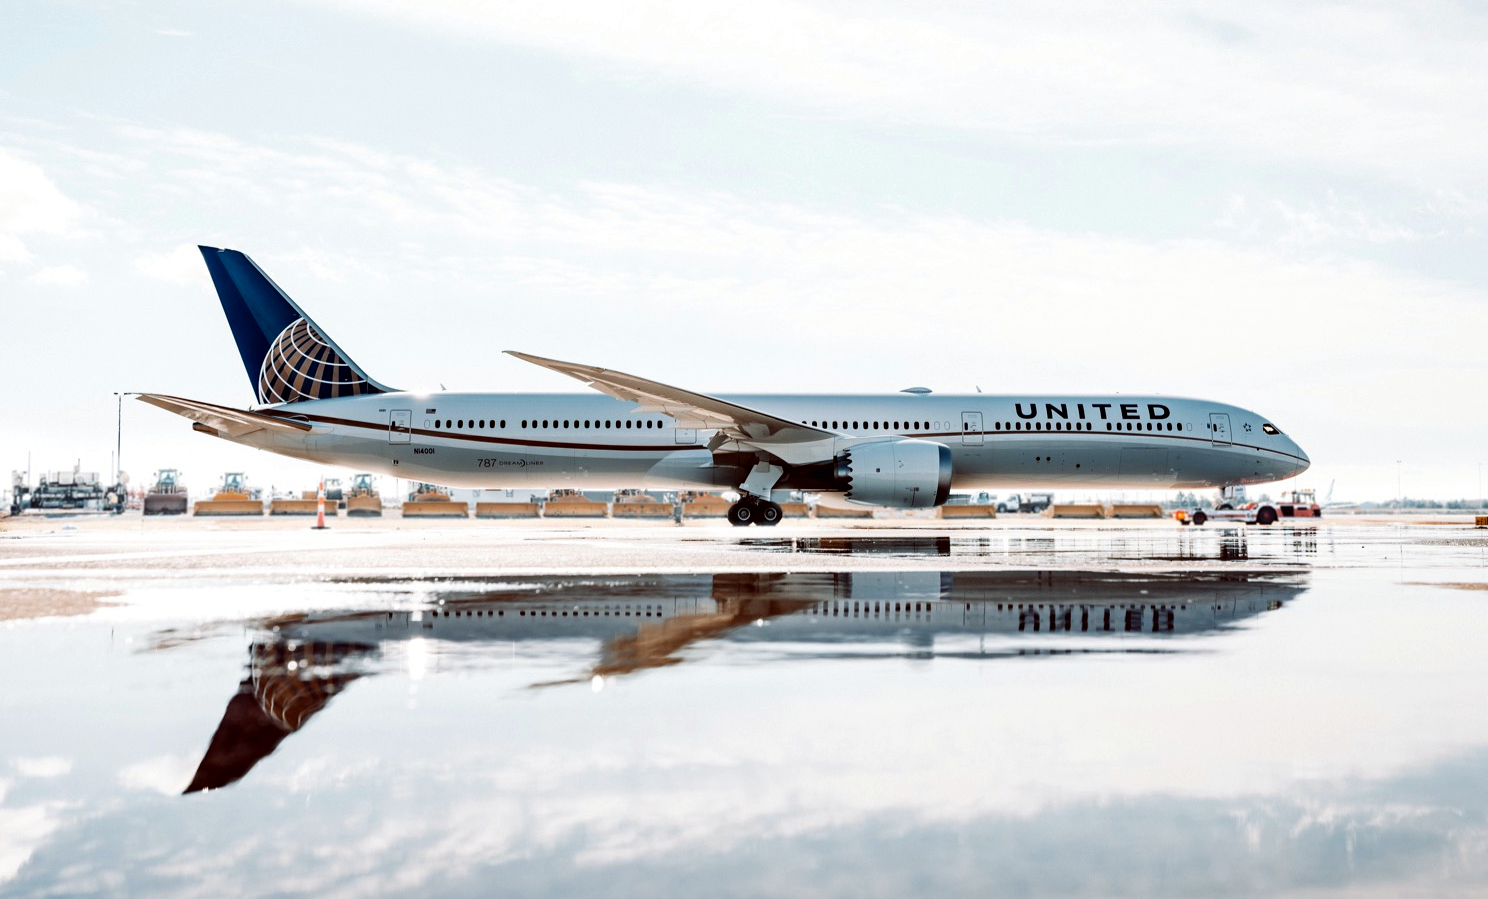 United Airlines Boeing 787-10 Water Reflection